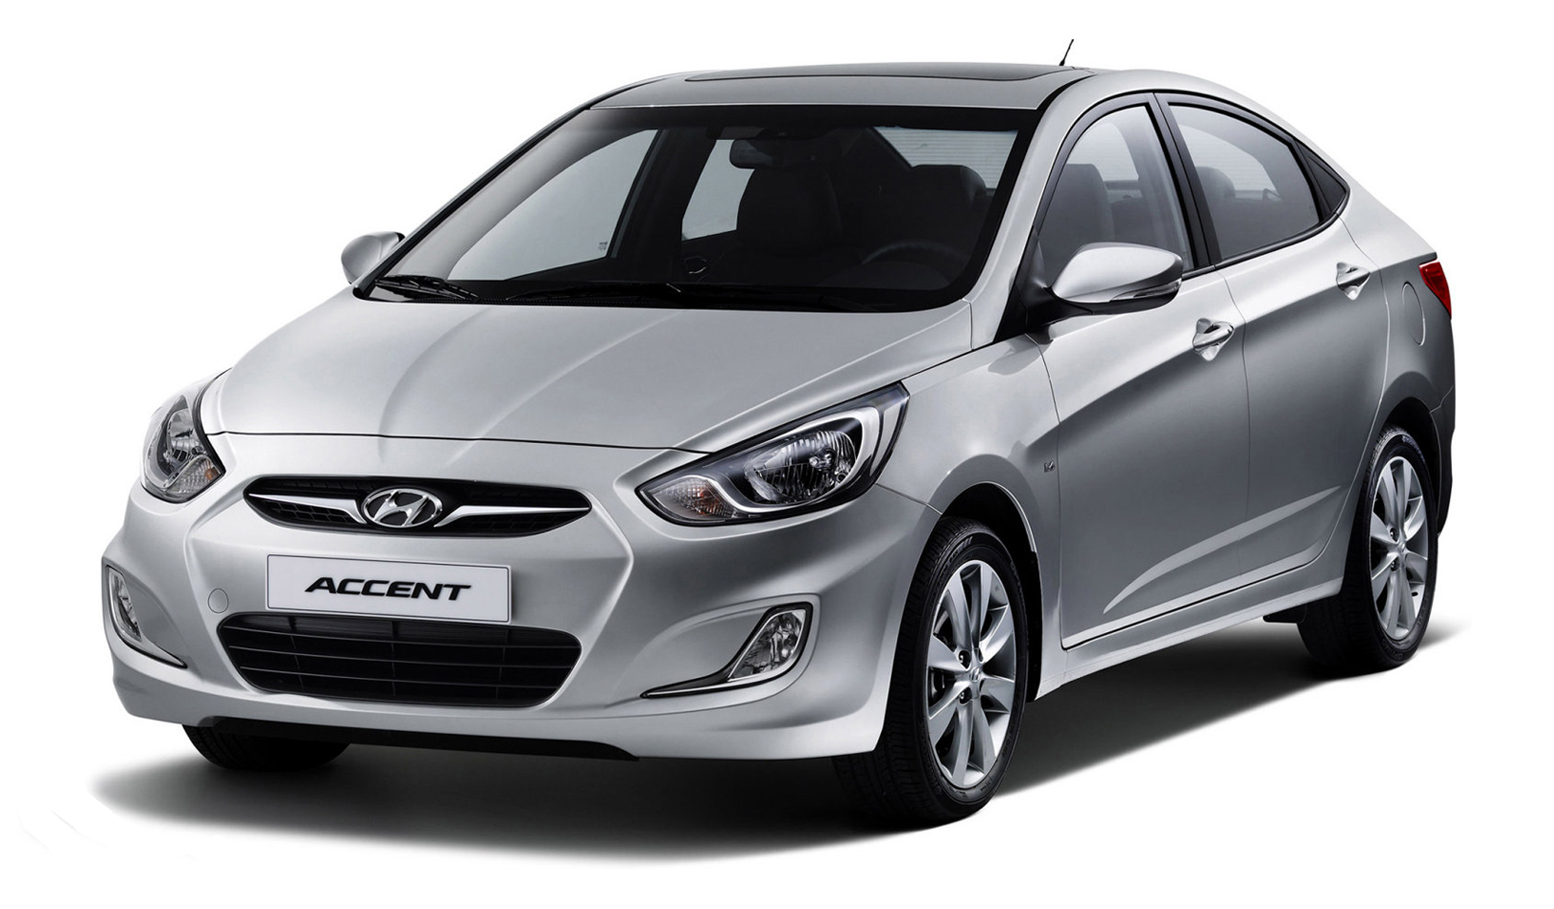 The all-new Hyundai Accent, which is planned to go on sale in Australia in the third quarter of 2011.